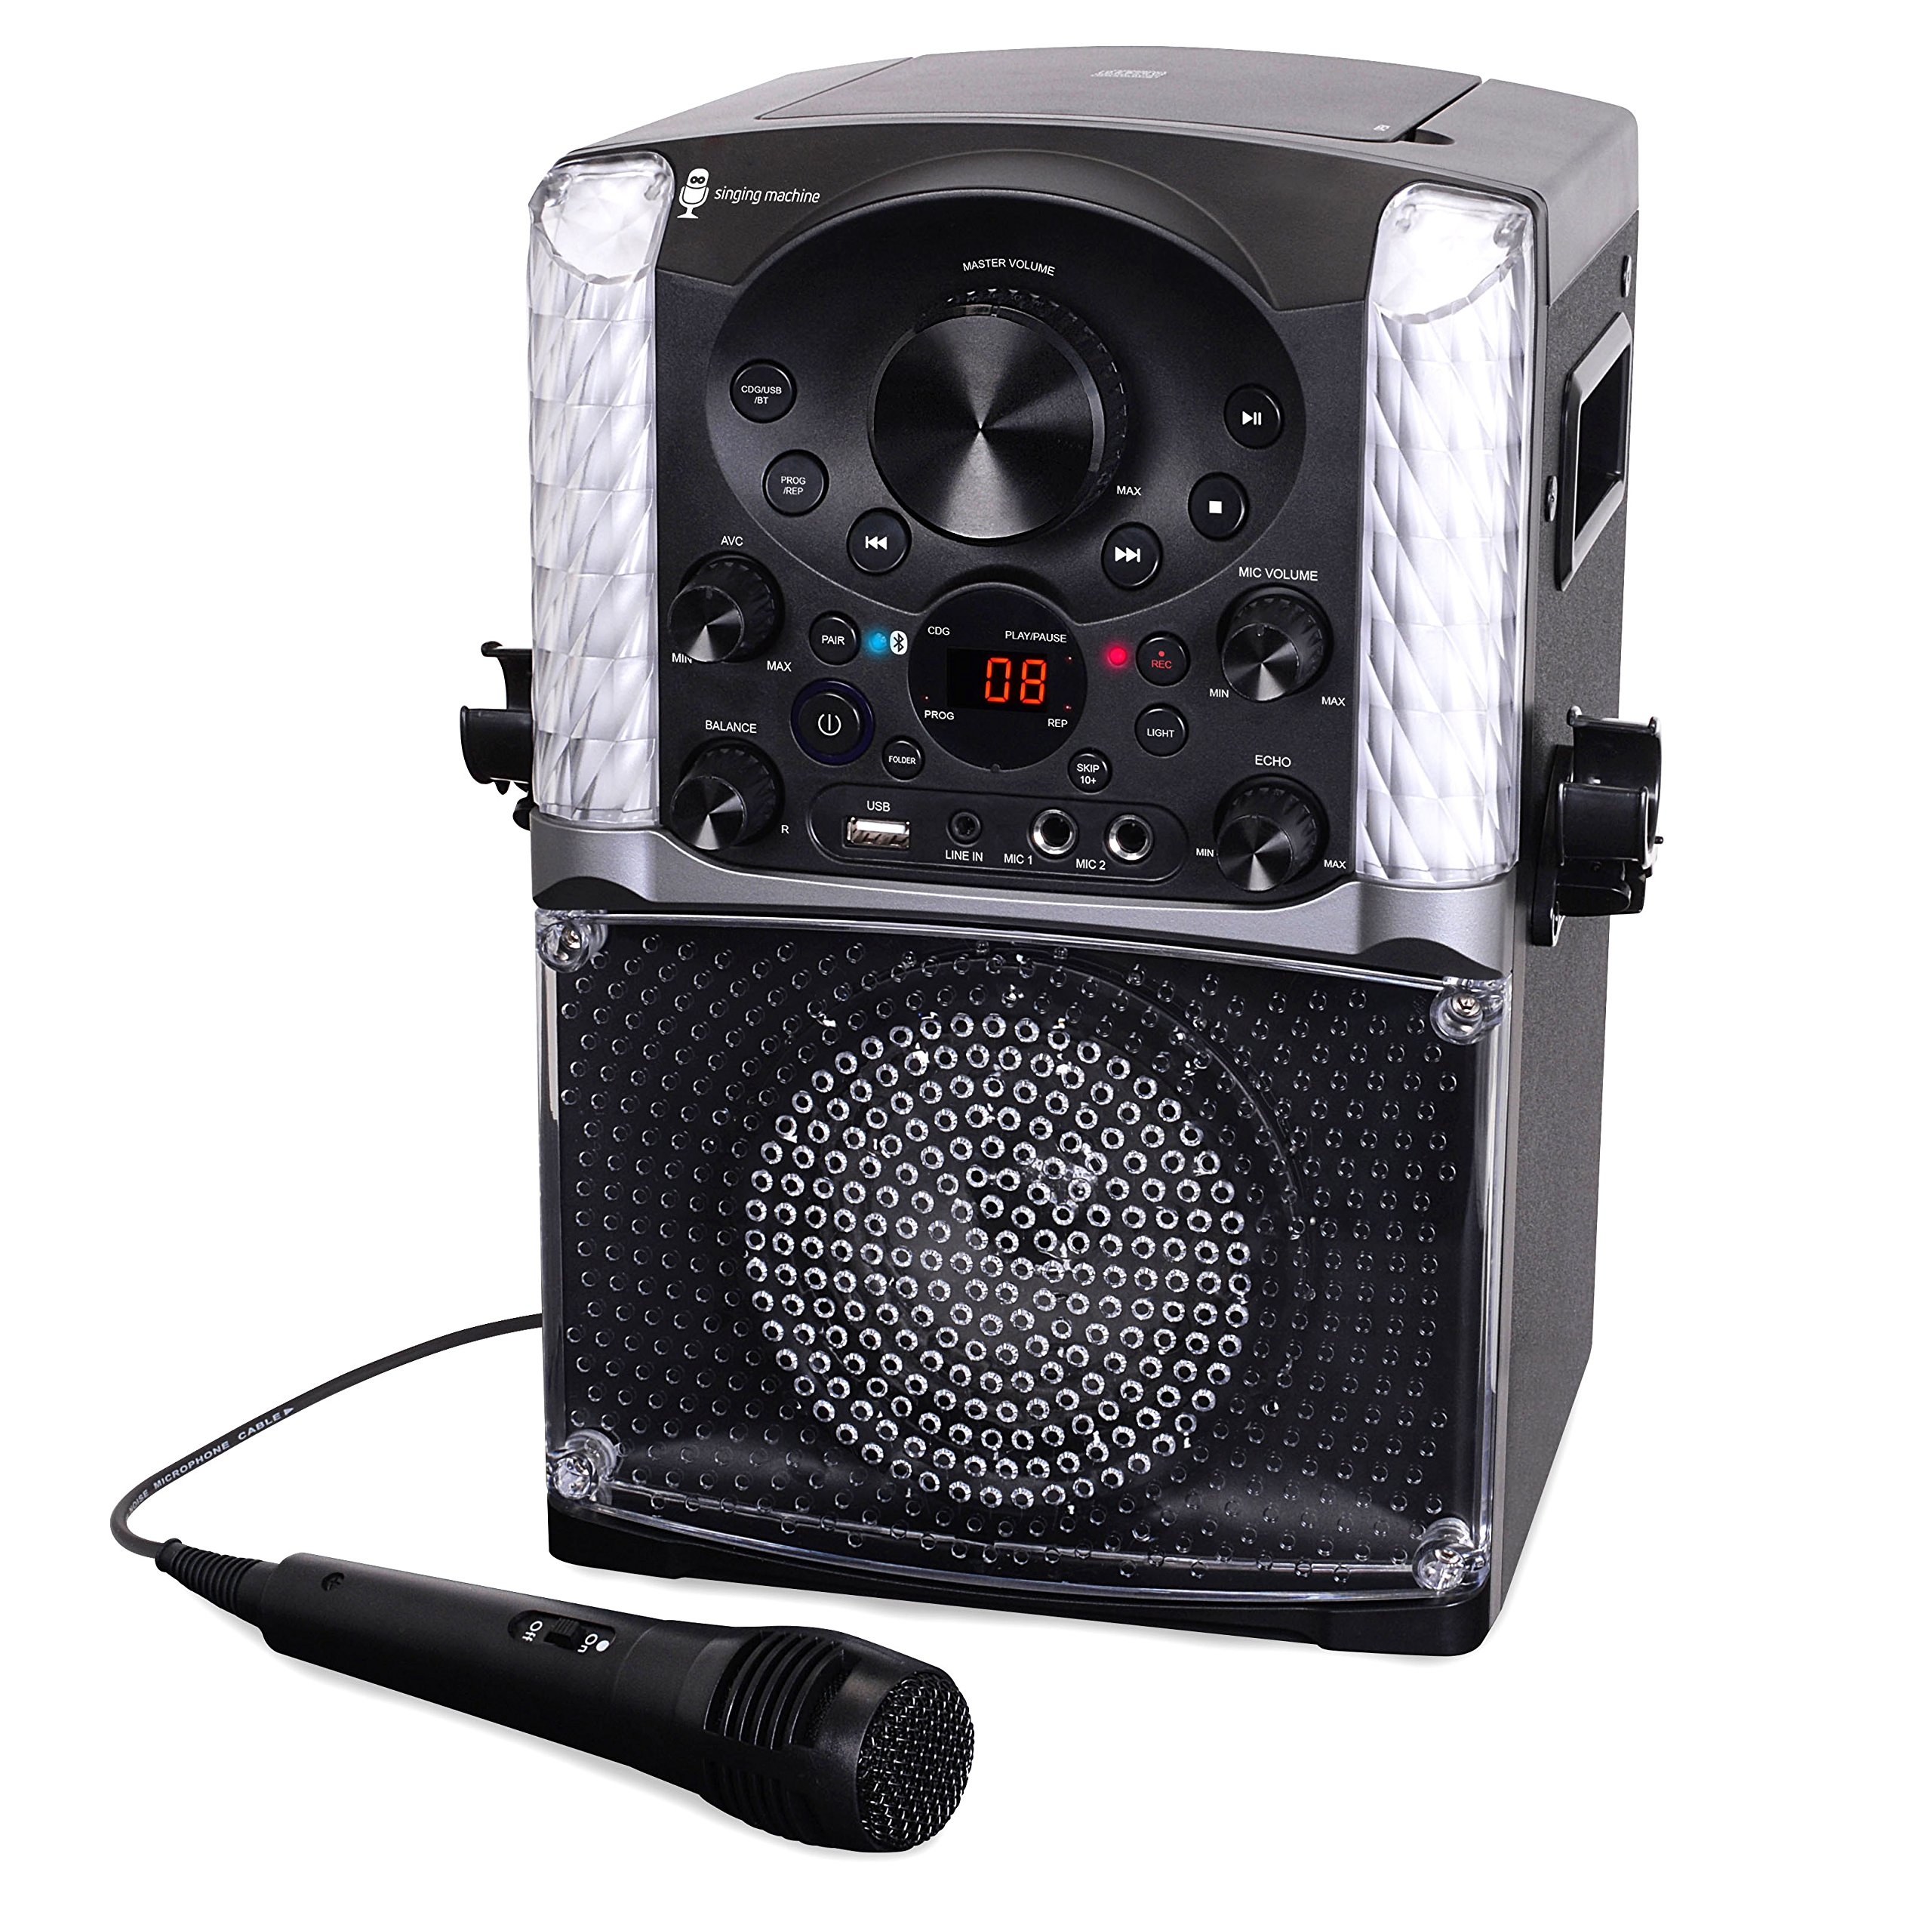 Singing Machine SML625BTBK Bluetooth CD+G Karaoke System Black by Singing Machine (Image #6)